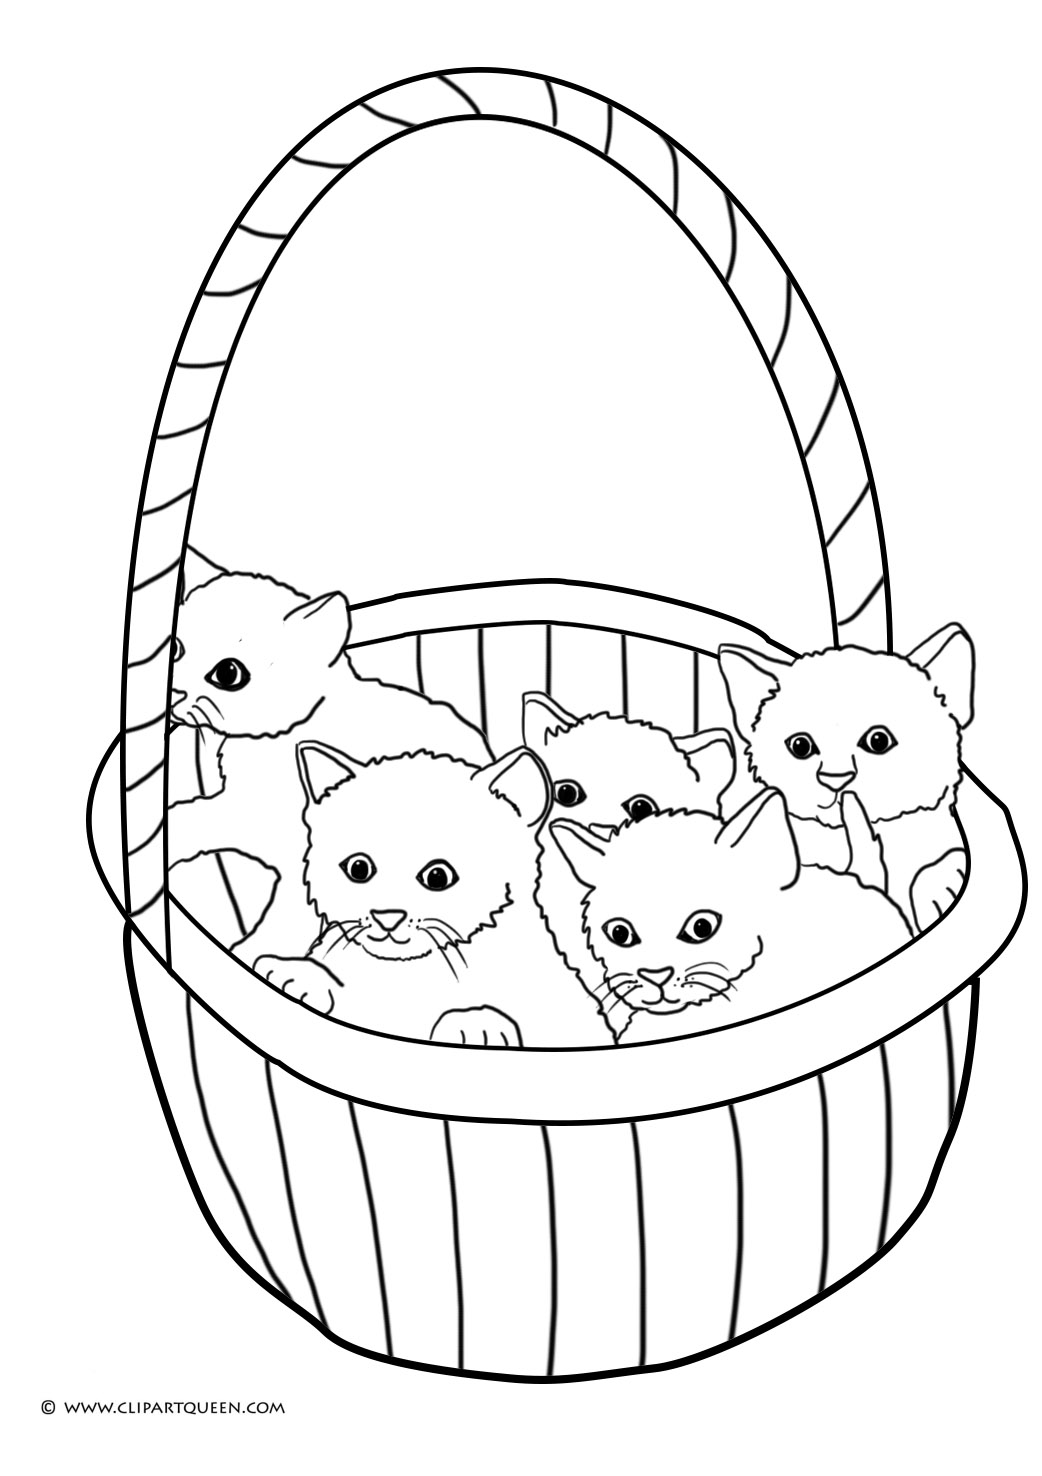 kitten printout coloring pages - photo#38